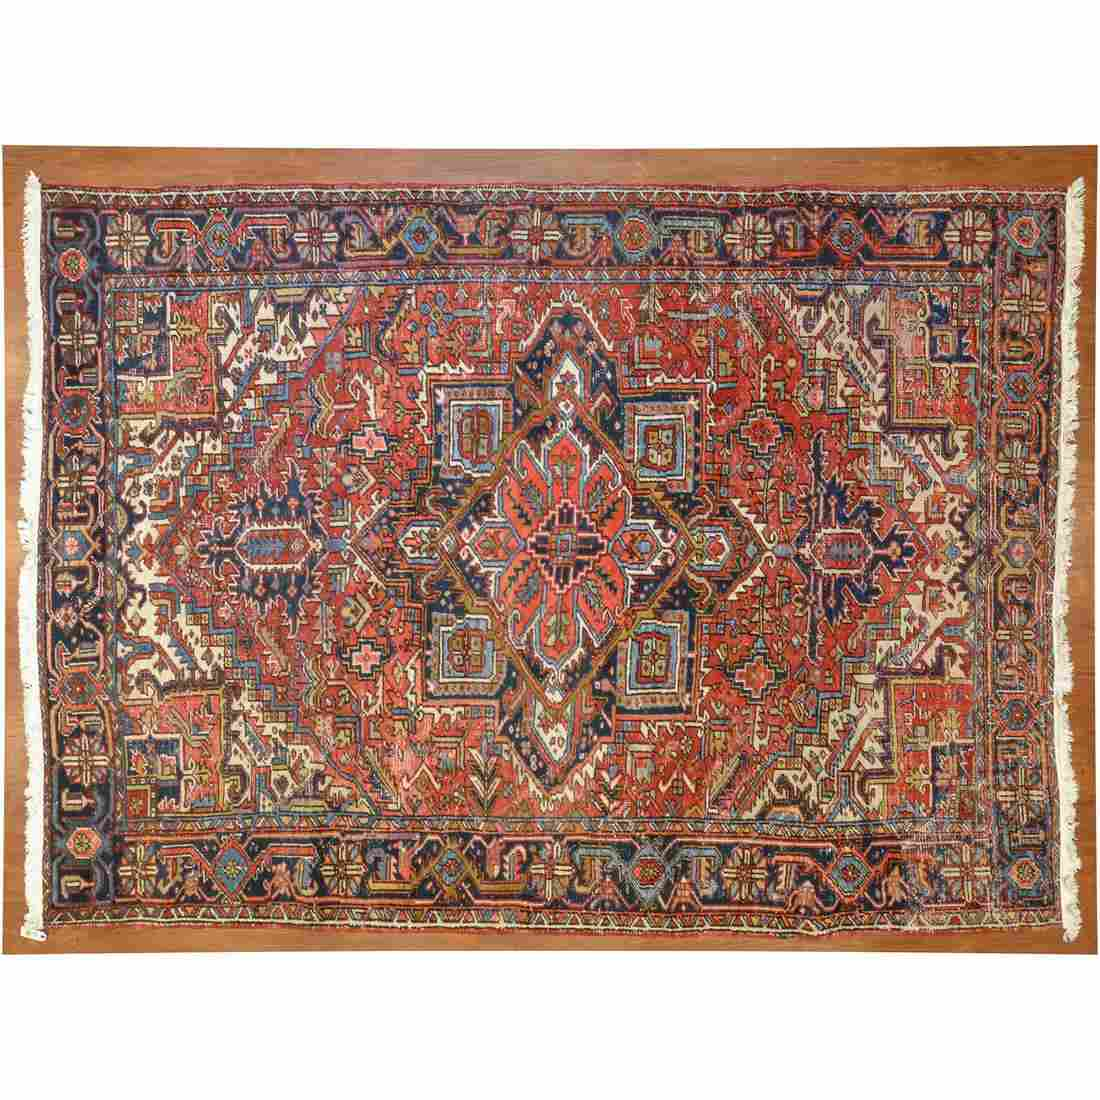 Semi-Antique Heriz Rug, Persia, 7.11 x 10.9